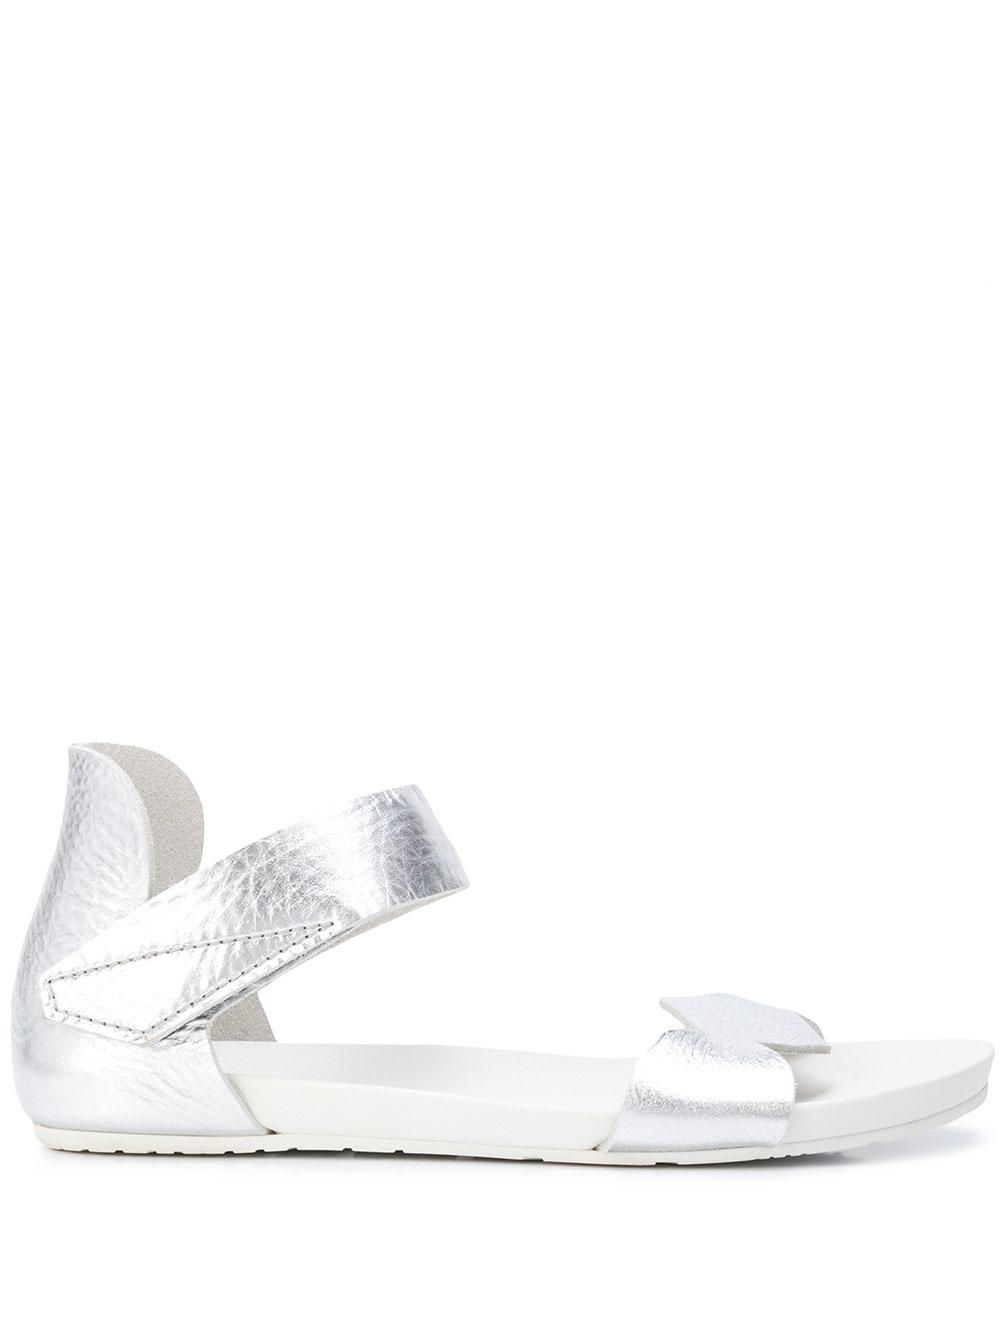 Lame Flat Sandal With Ankle Strap